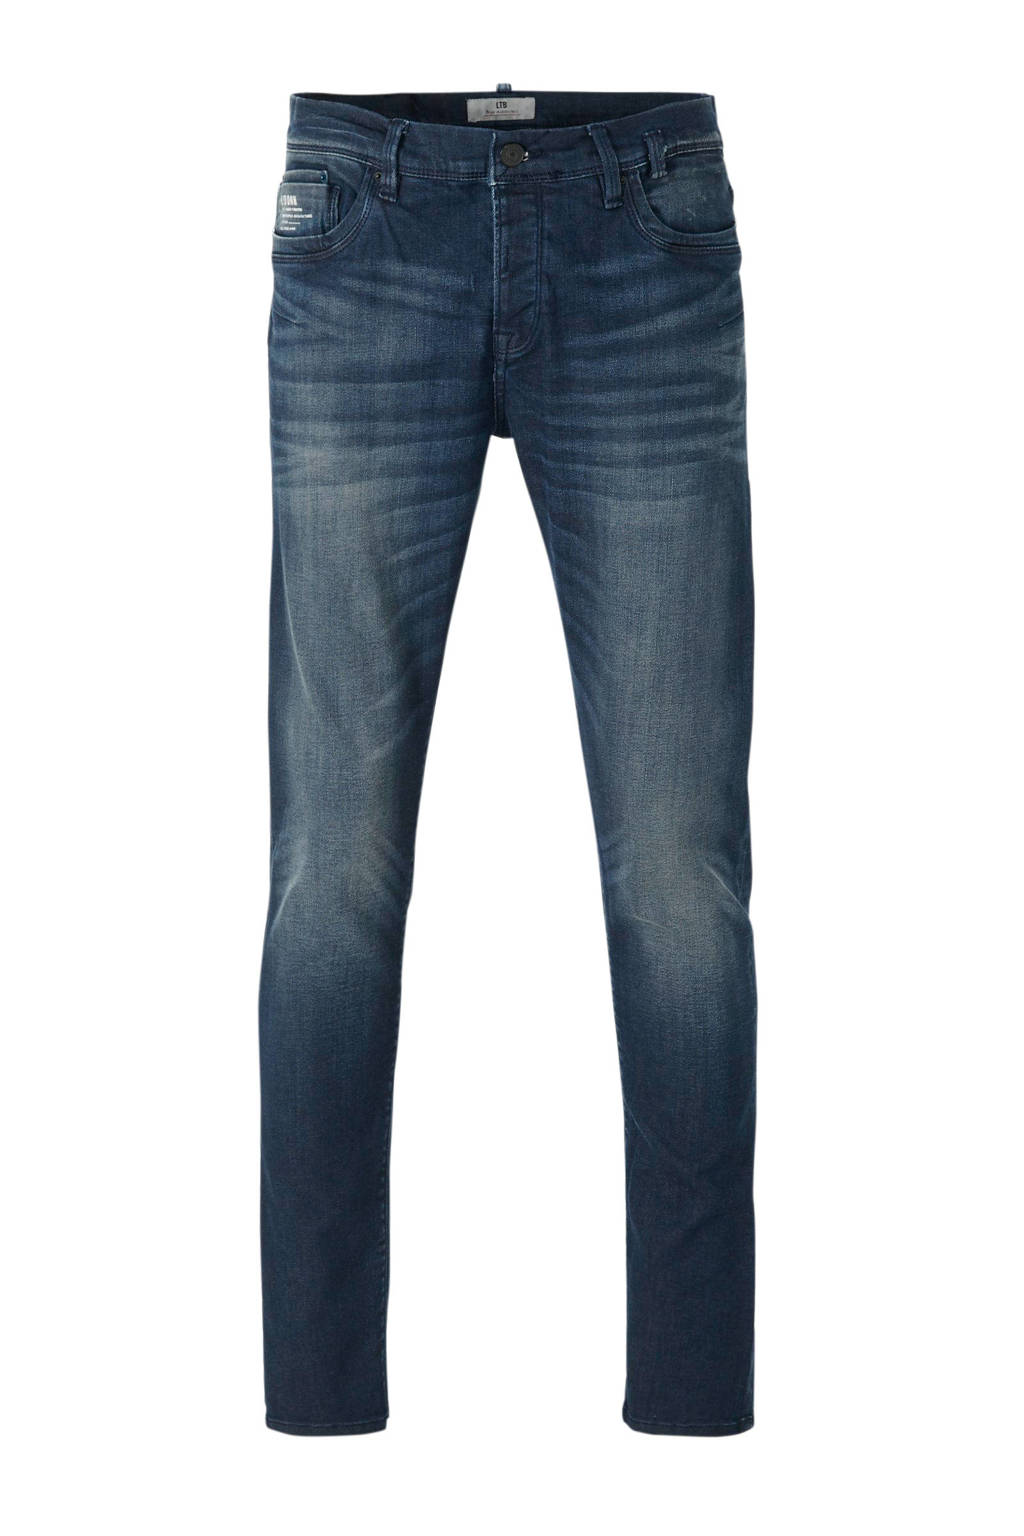 LTB tapered fit jeans alroy, 51536 Alroy